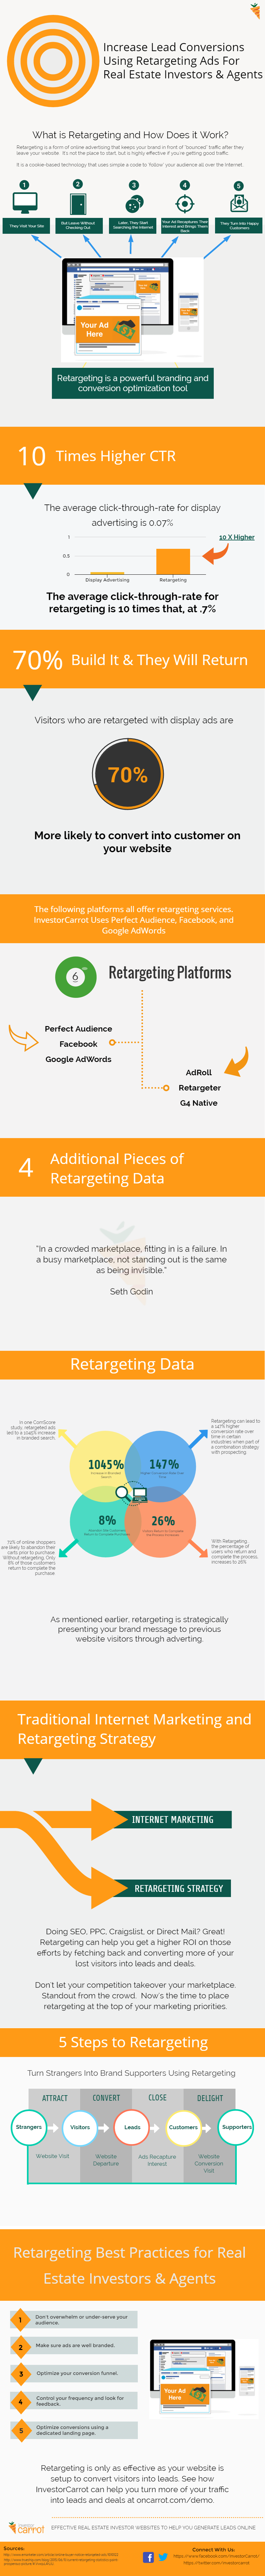 Facebook Retargeting Infographic for Real Estate Investors